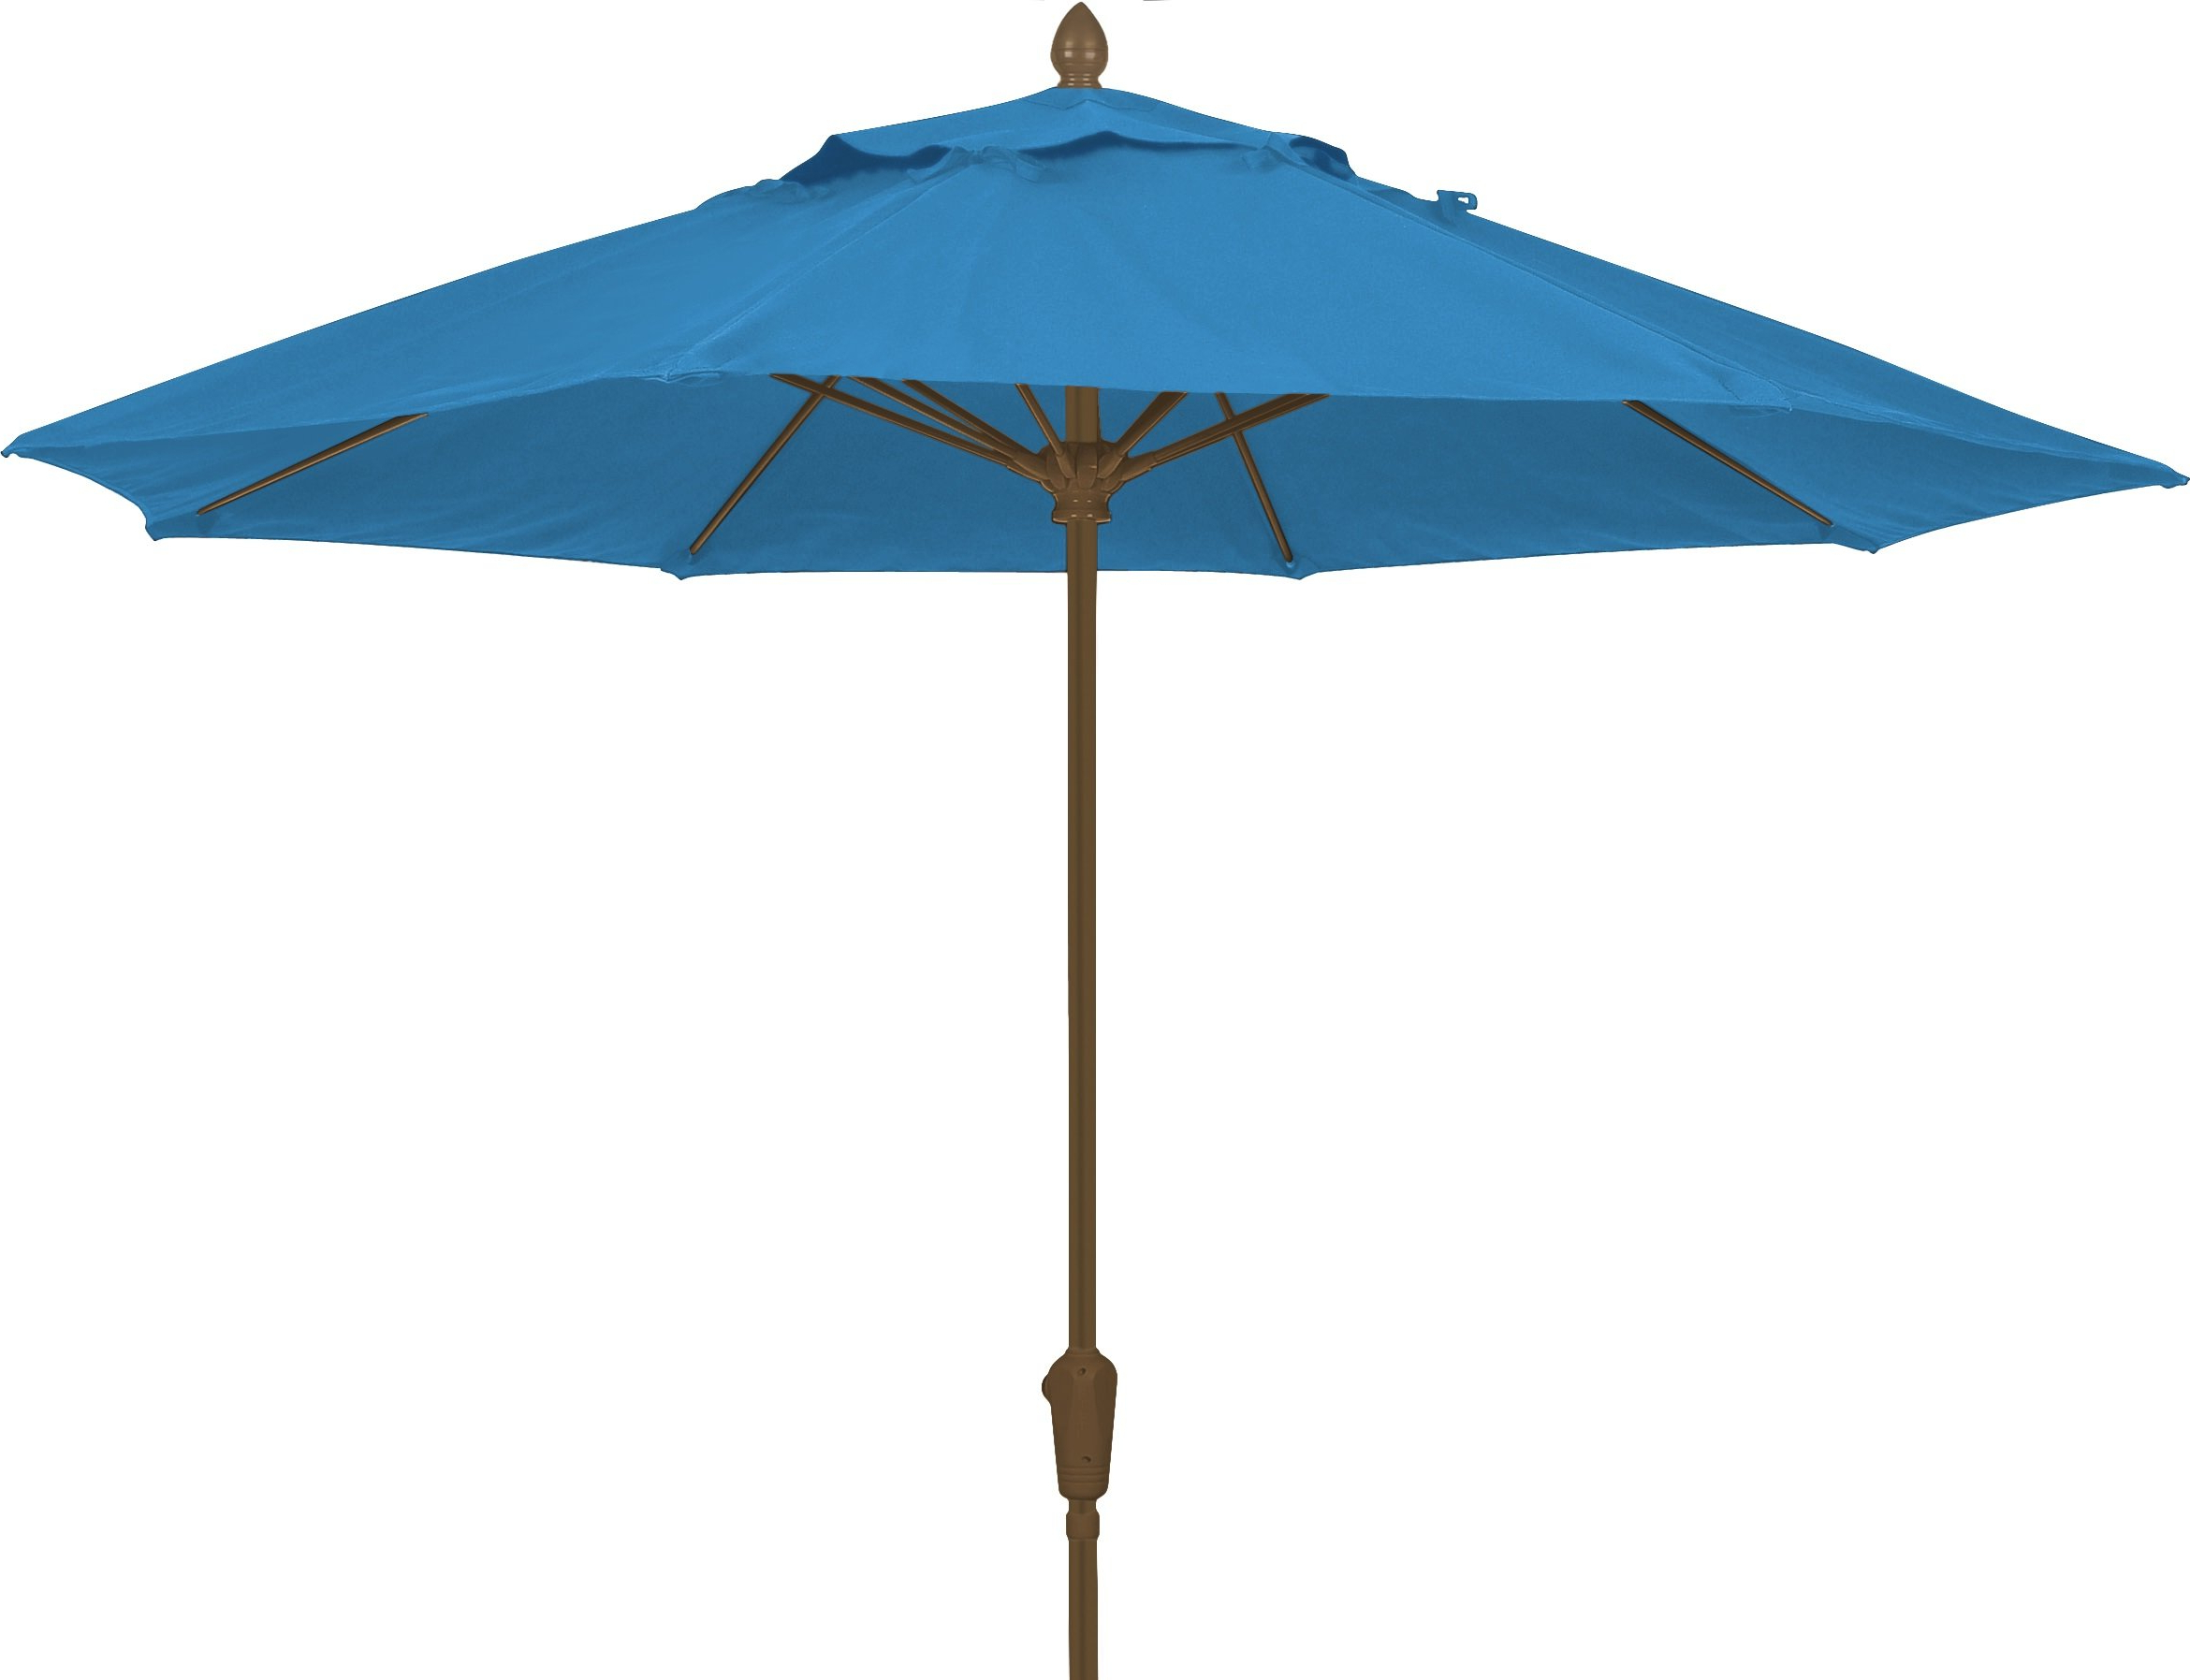 Crowland Market Sunbrella Umbrellas In Well Liked Prestige 9' Market Sunbrella Umbrella (View 2 of 20)